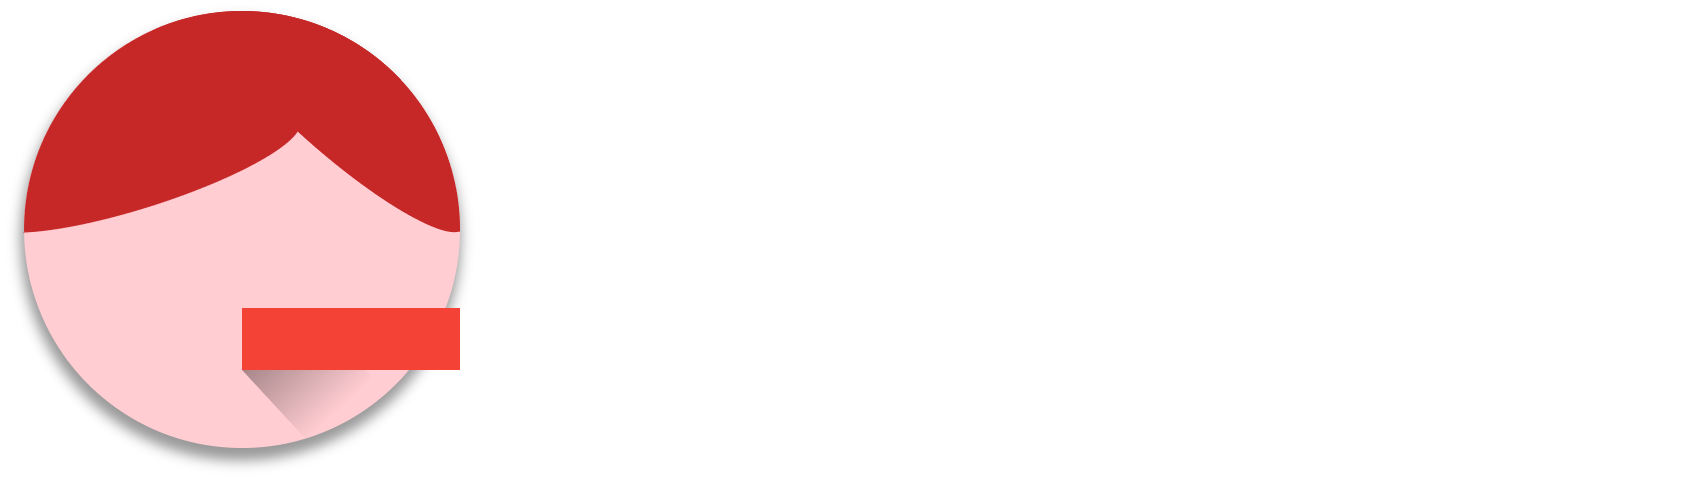 picture/harukin-.png